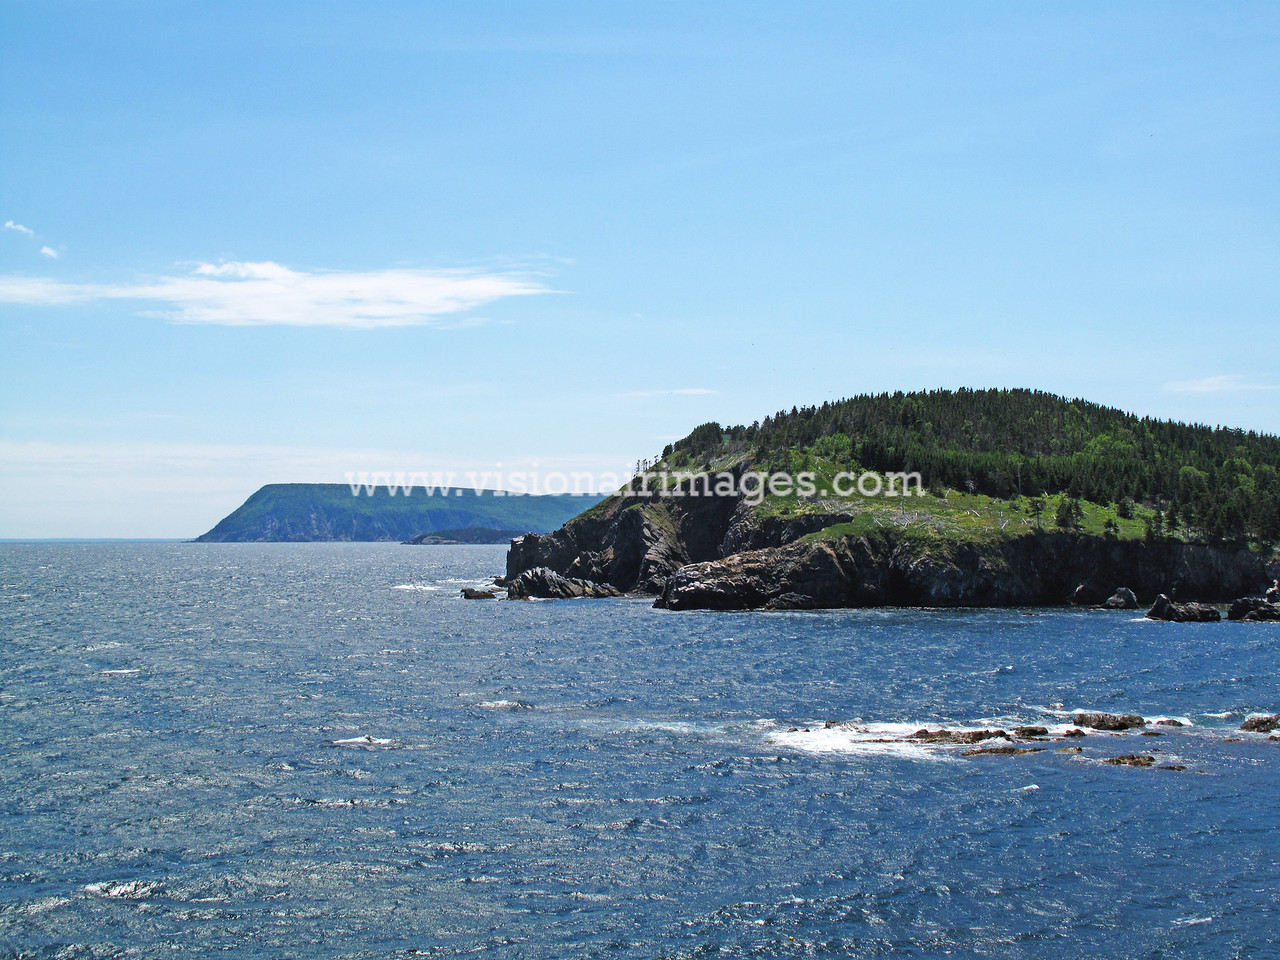 Cape Breton Highlands National Park, Cape Smokey, North/ South Ingonish Bays, Cabot Trail, Ingonish Beach, Nova Scotia, Canada